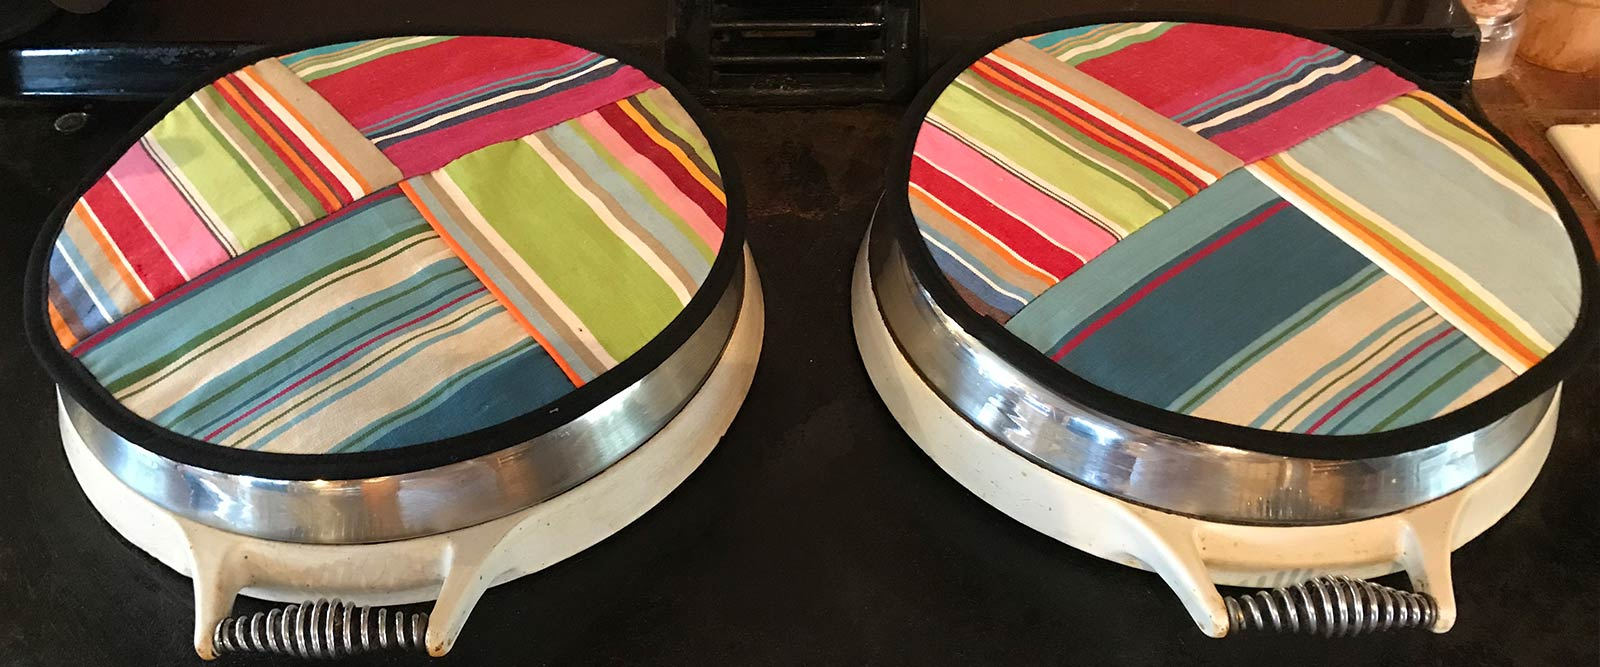 Striped Hob Covers for Agas | Multi Stripe Chefs Pads